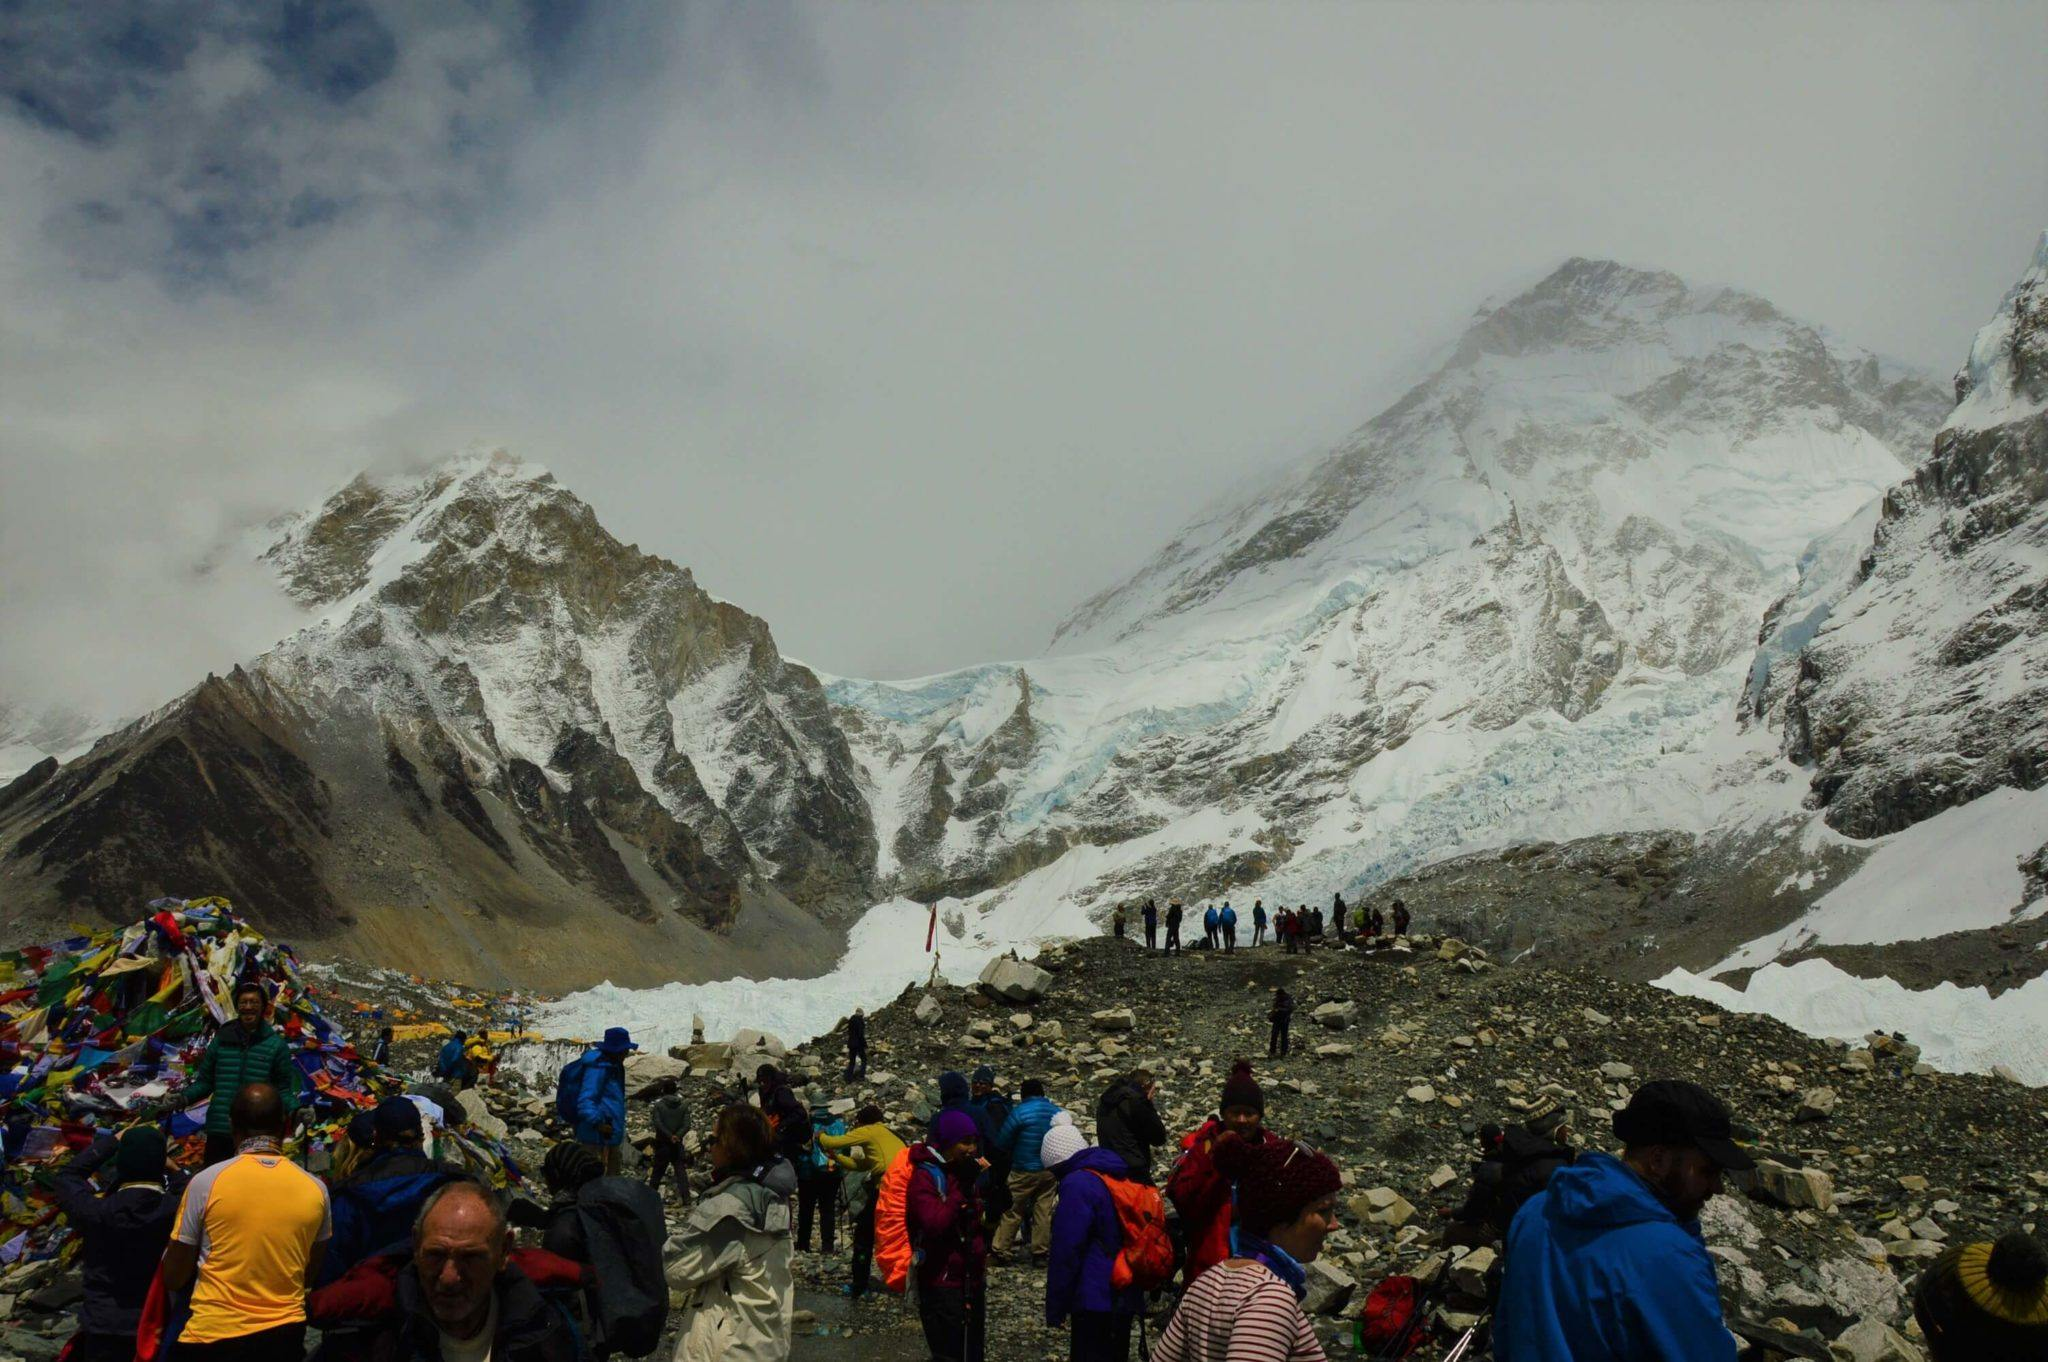 everest base camp with mountains and icefall in background